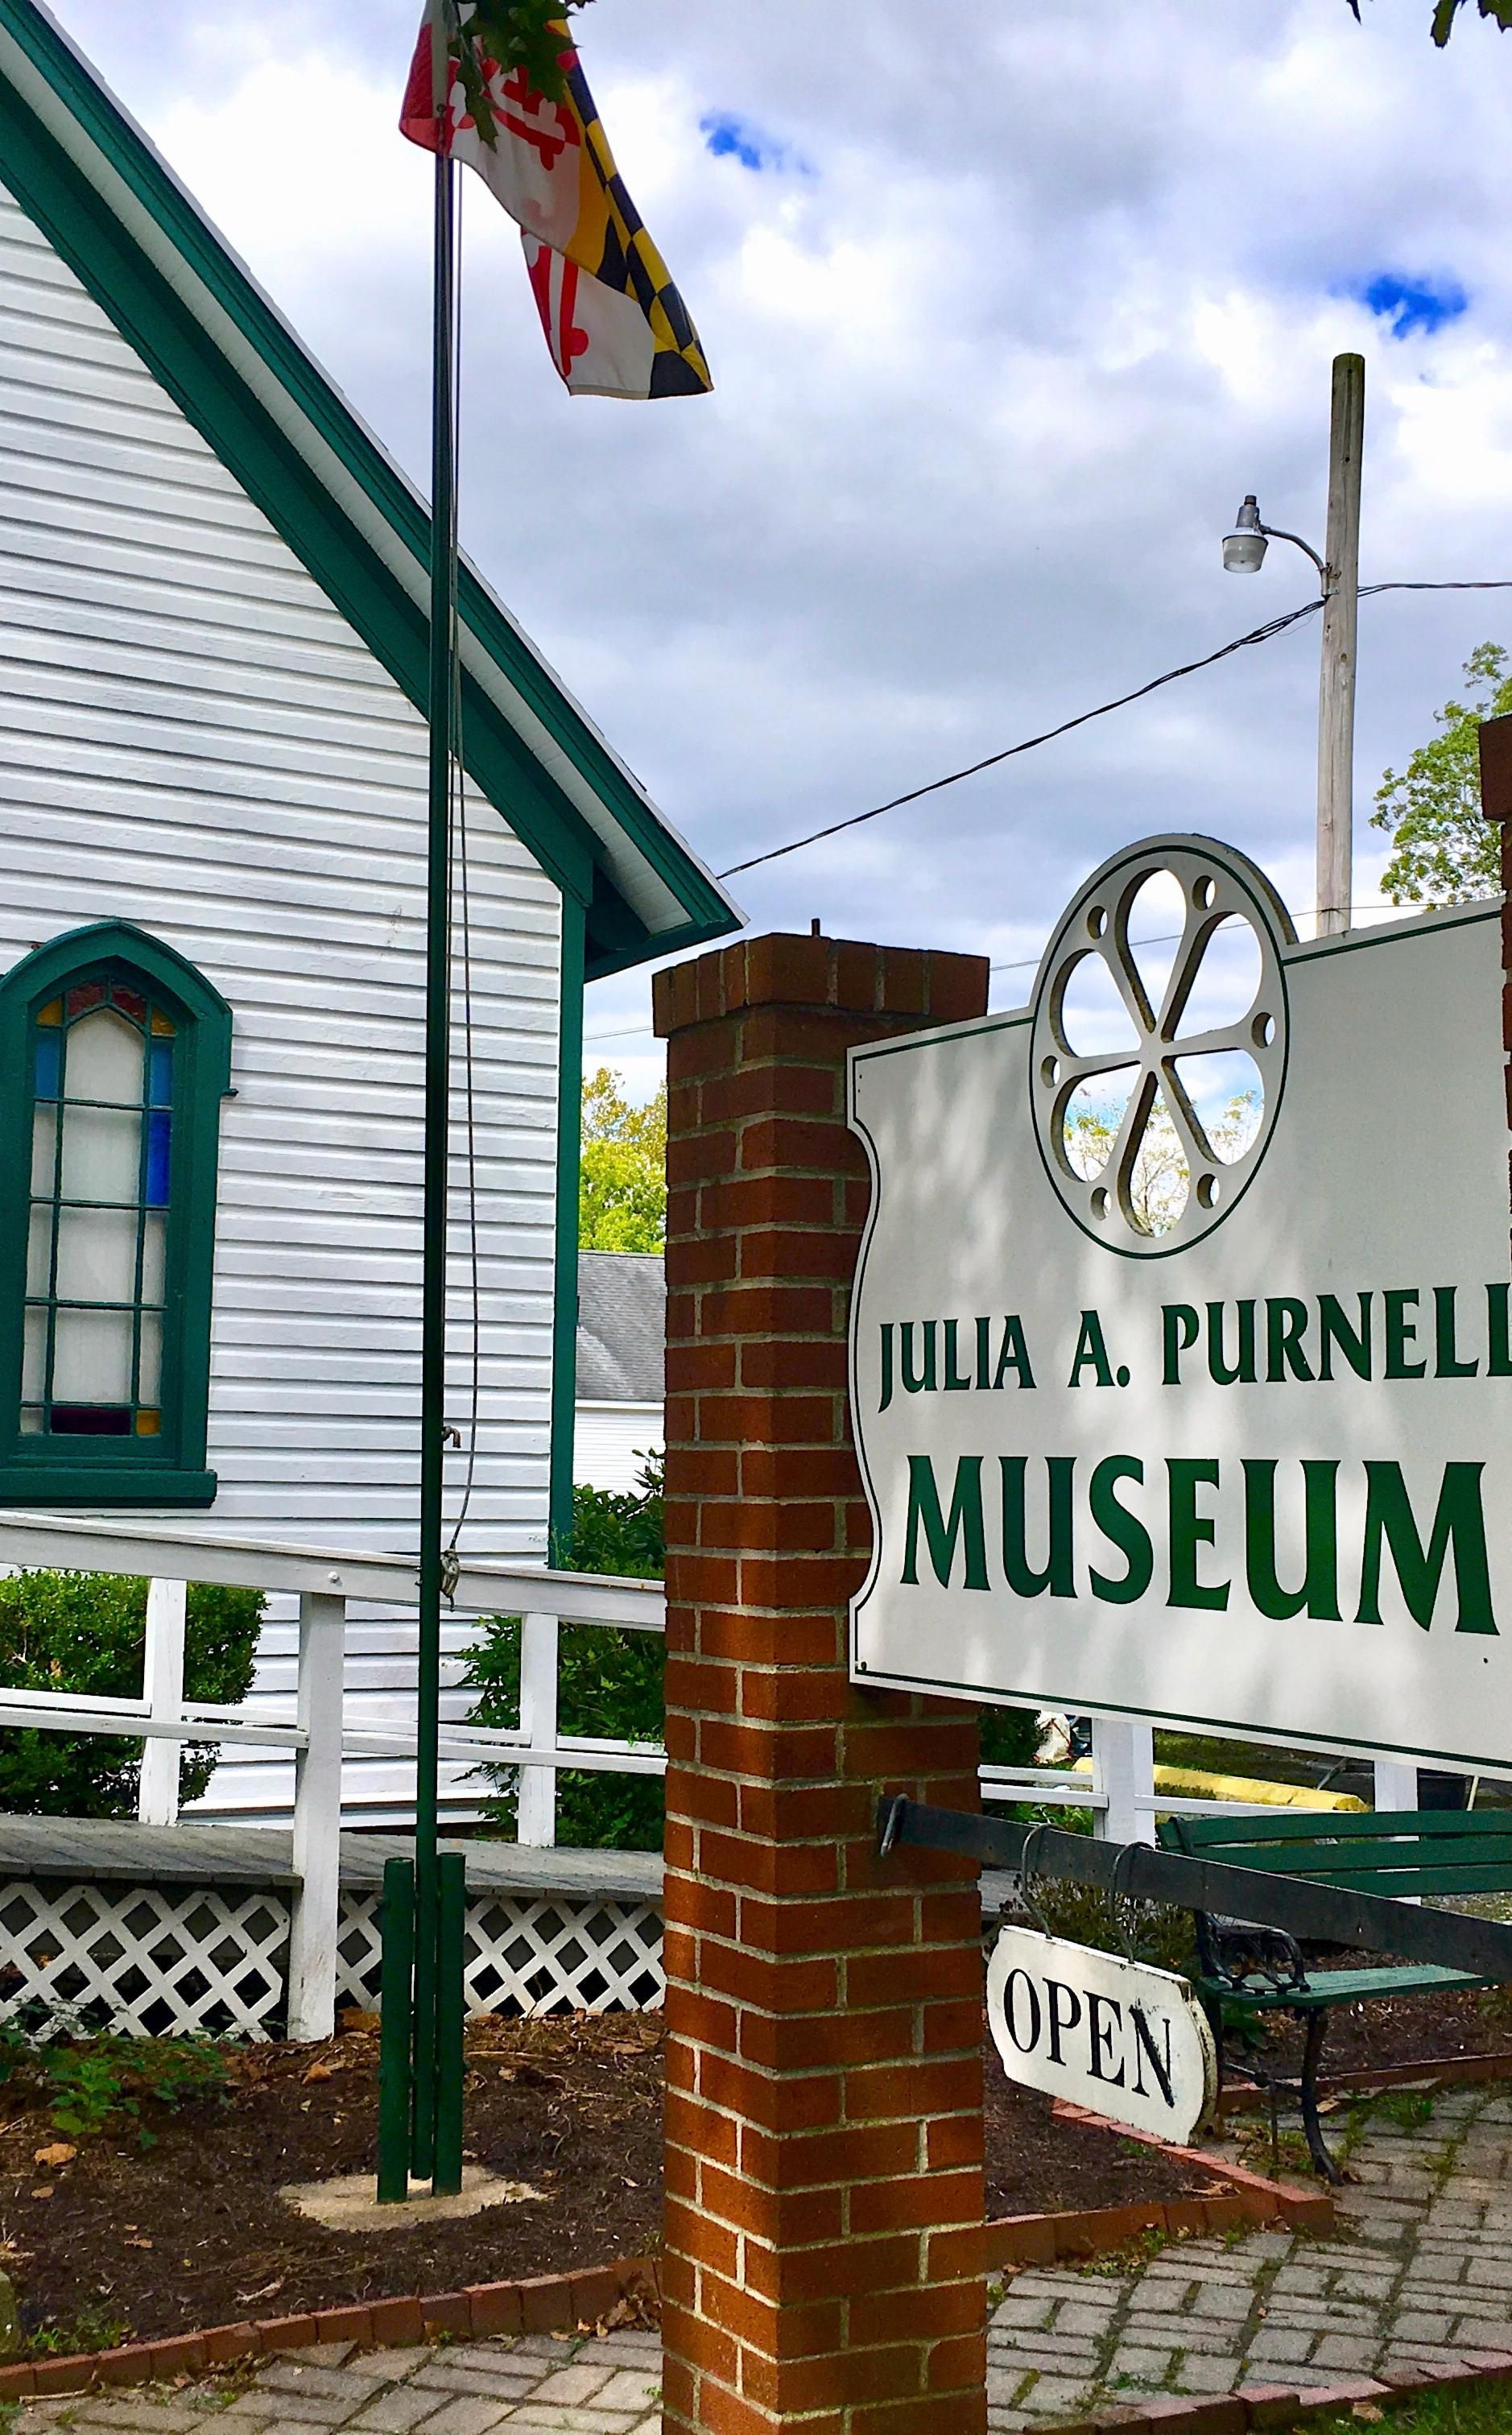 Known Locally As Worcester County S Attic Don T Miss The Julia A Purnell Museum If You Re Visiting Snow Hill Worcester County Maryland Beaches State Parks